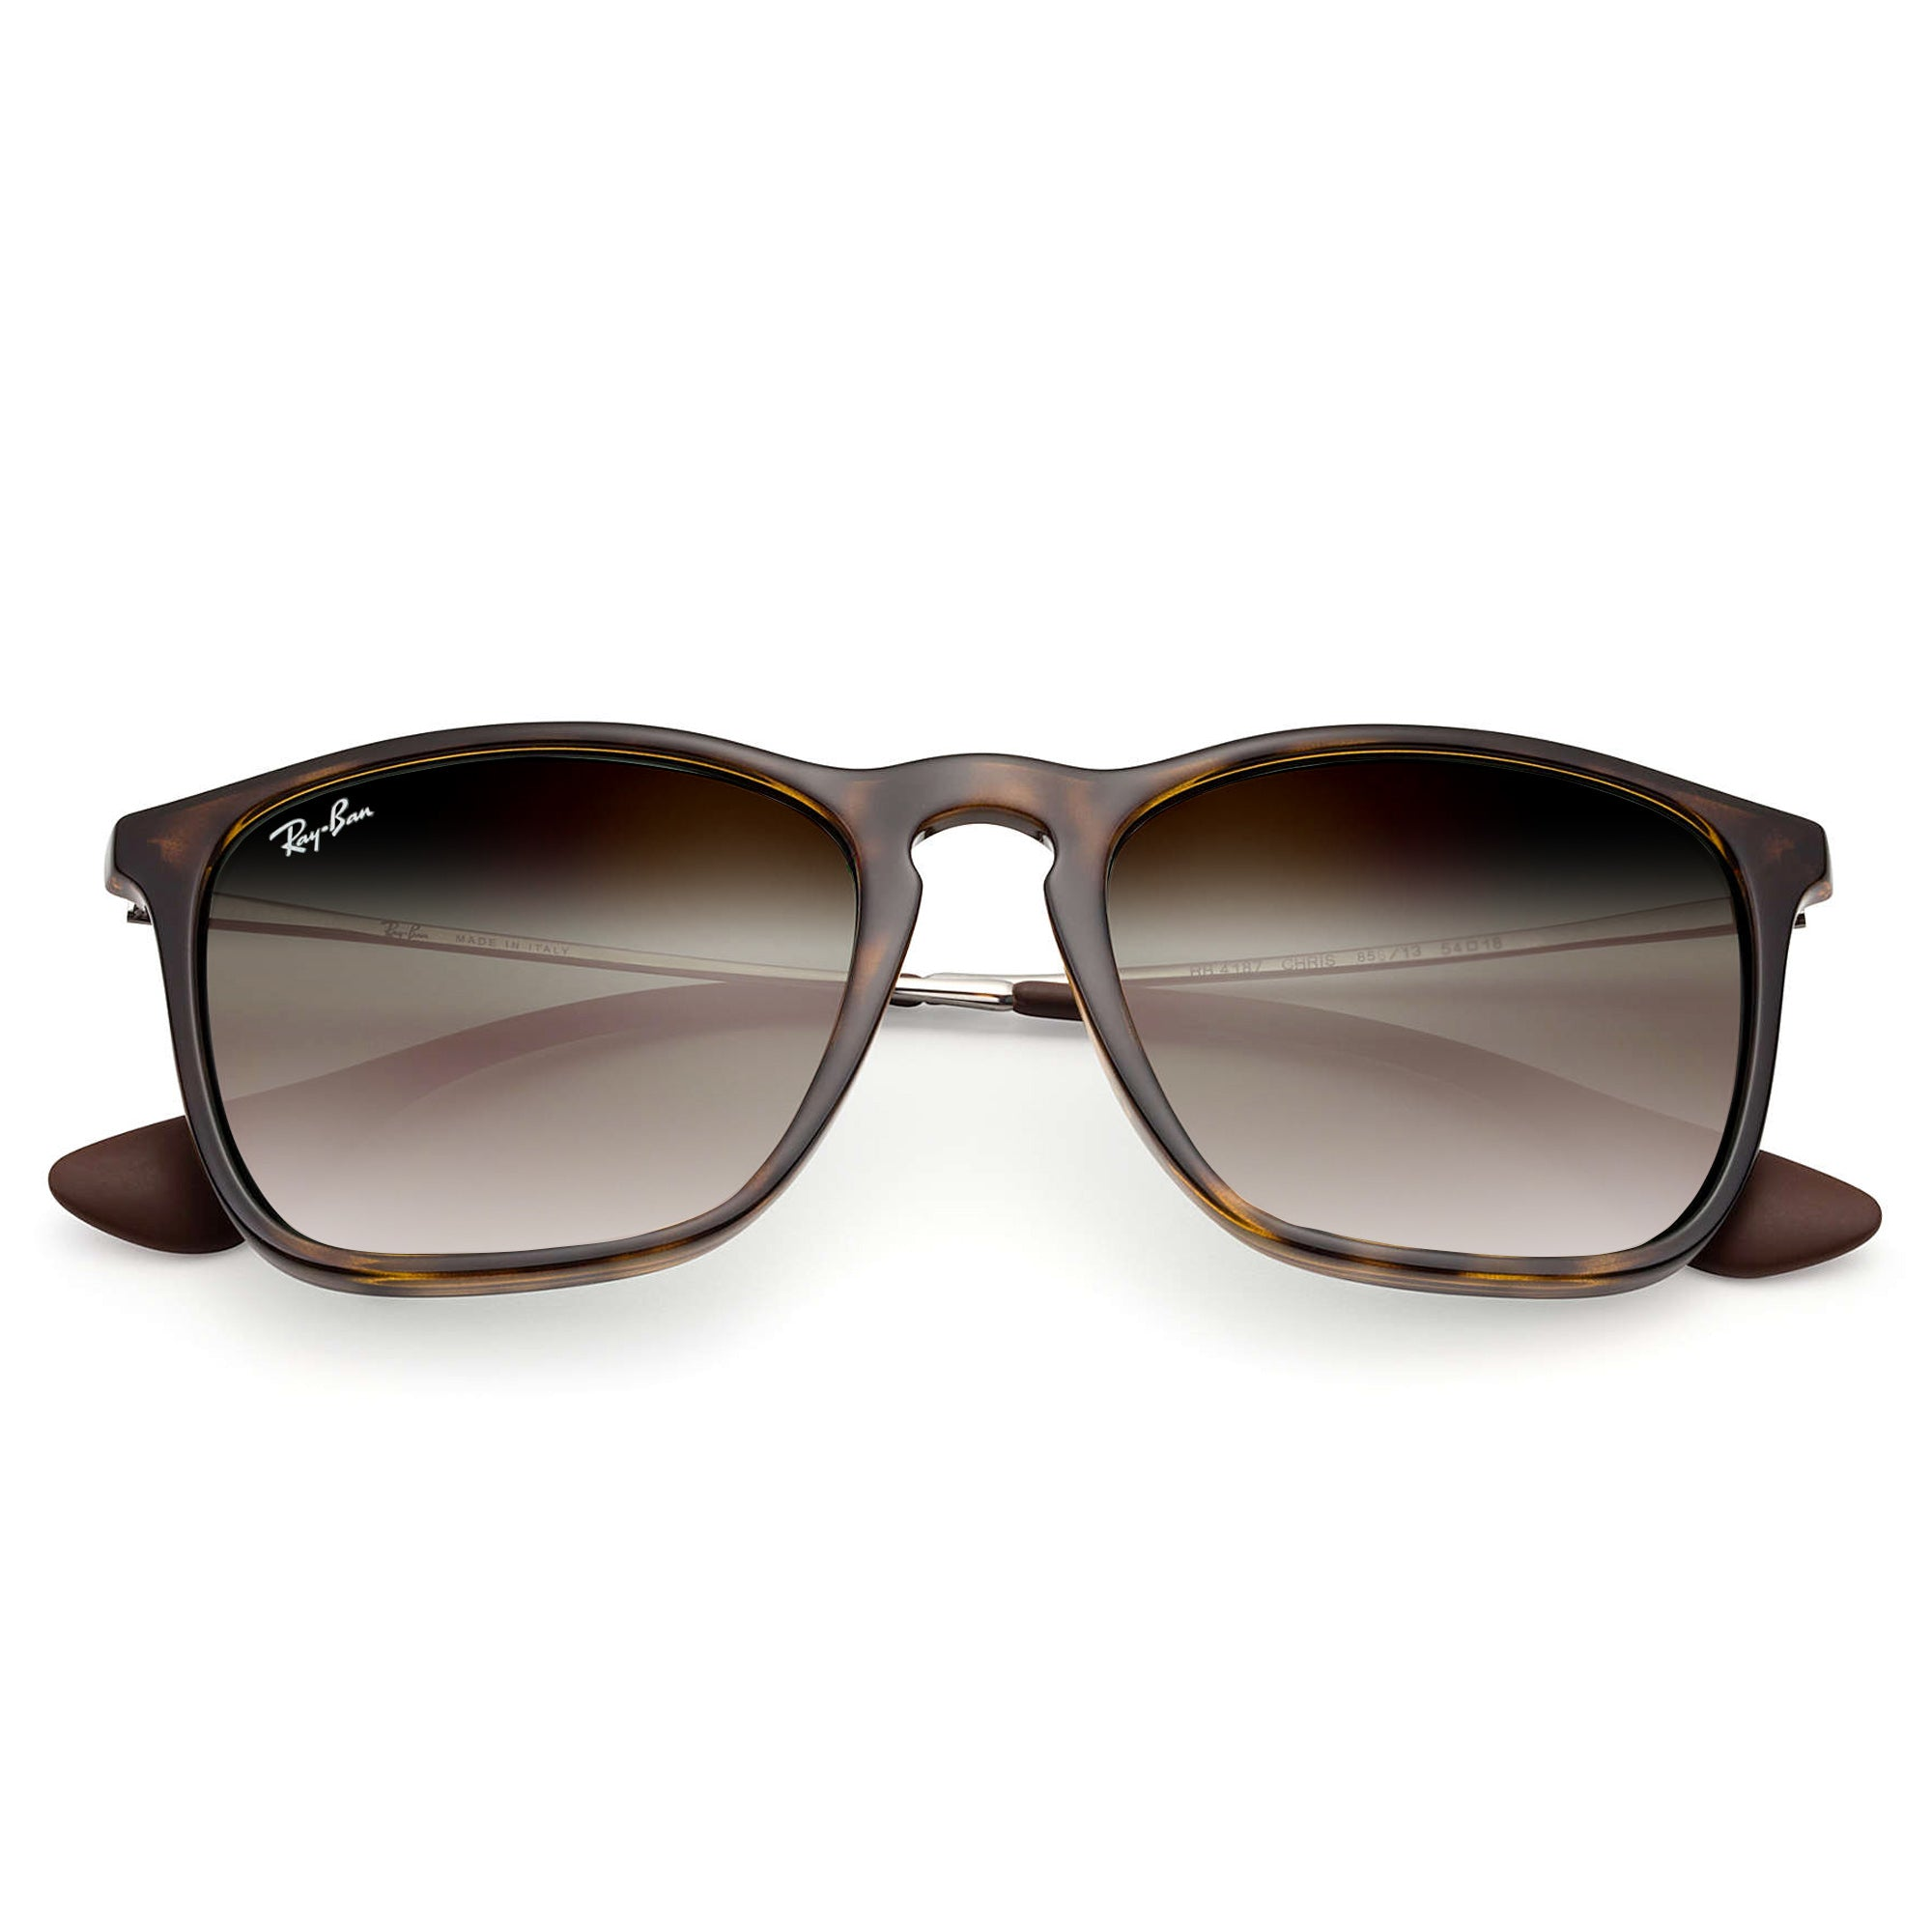 71863826be Ray-Ban CHRIS 4187 NEW! UNISEX - TORTOISE - BROWN GRADIENT 856-13-54 ...